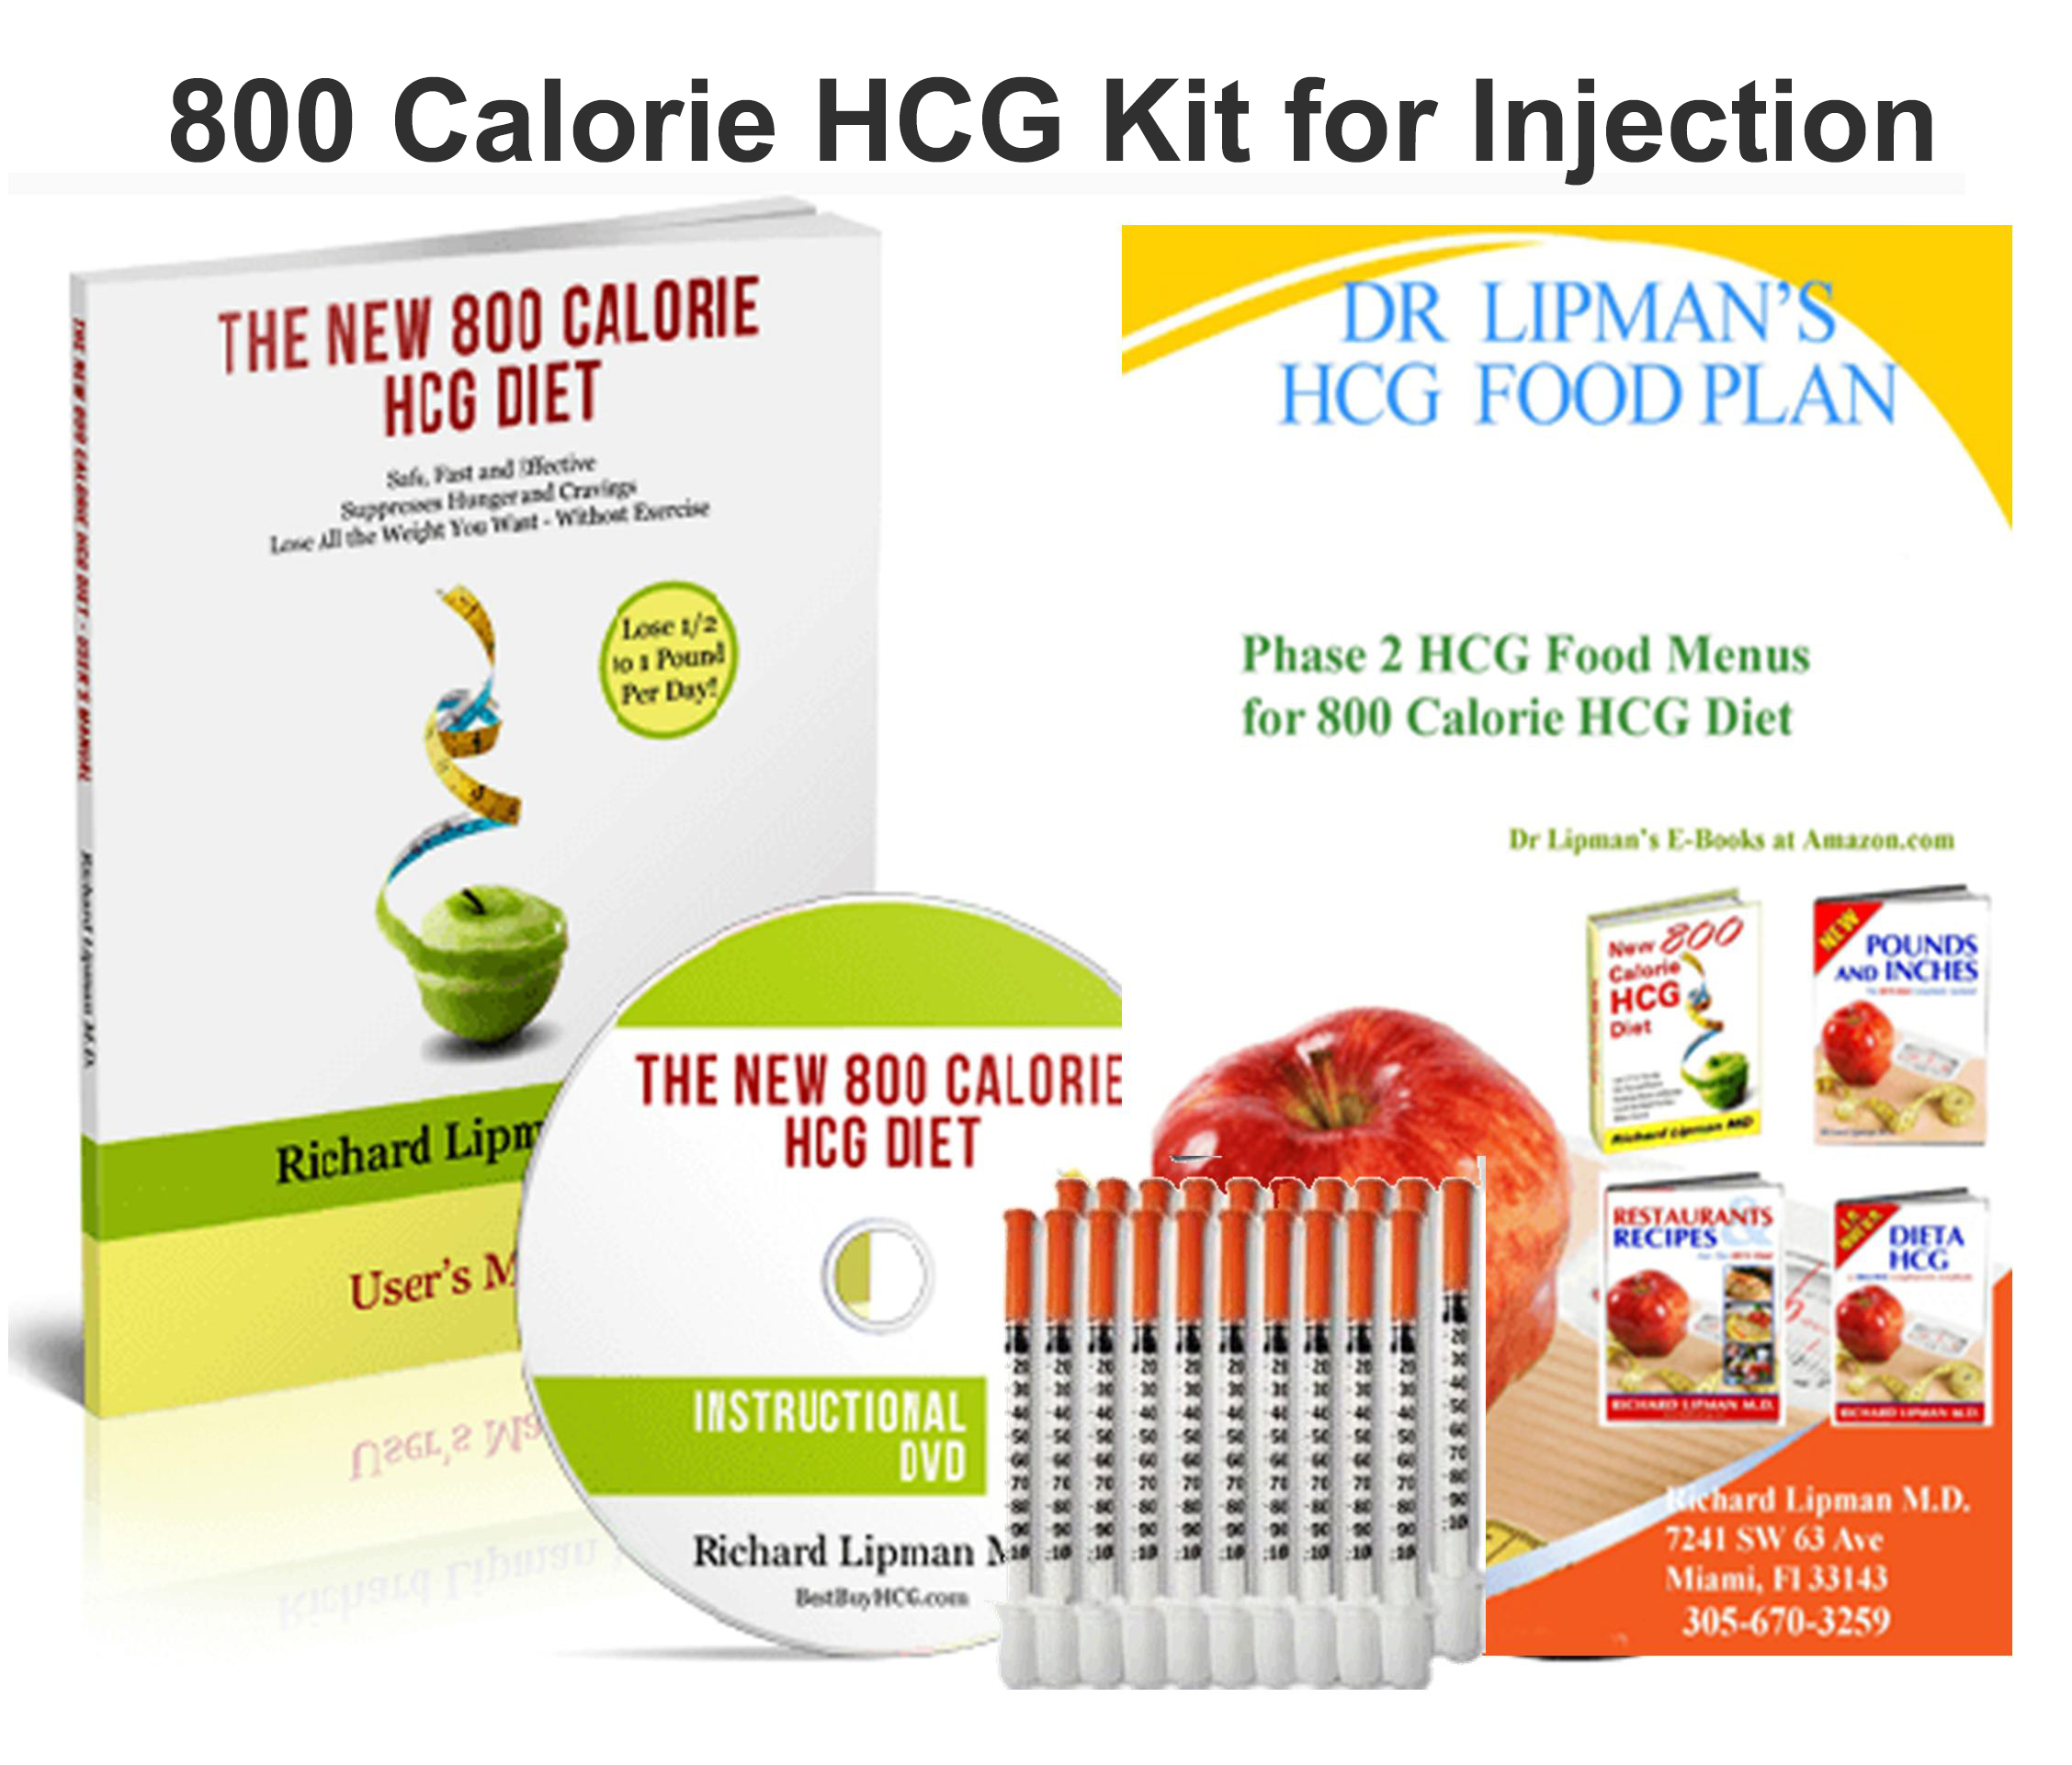 800 calorie fortified prescription hcg drops vs injections Miami